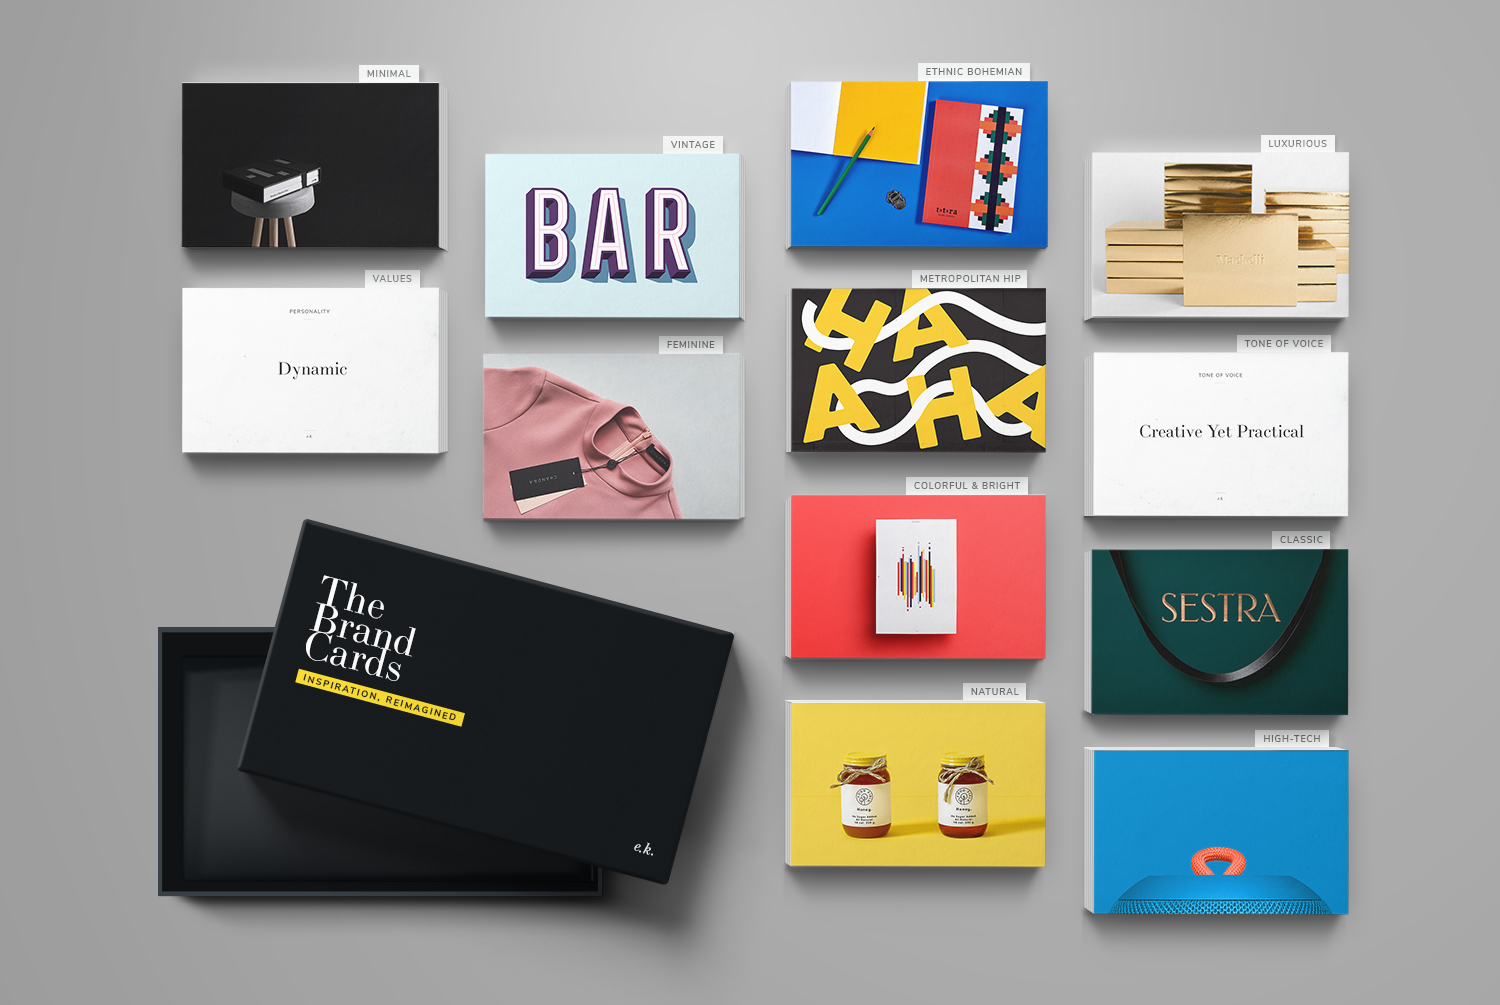 """Menta Picante's designs are featured in the """"Colorful & Bright"""" and """"Metropolitan Hip"""" styles of our   Brand Cards >"""